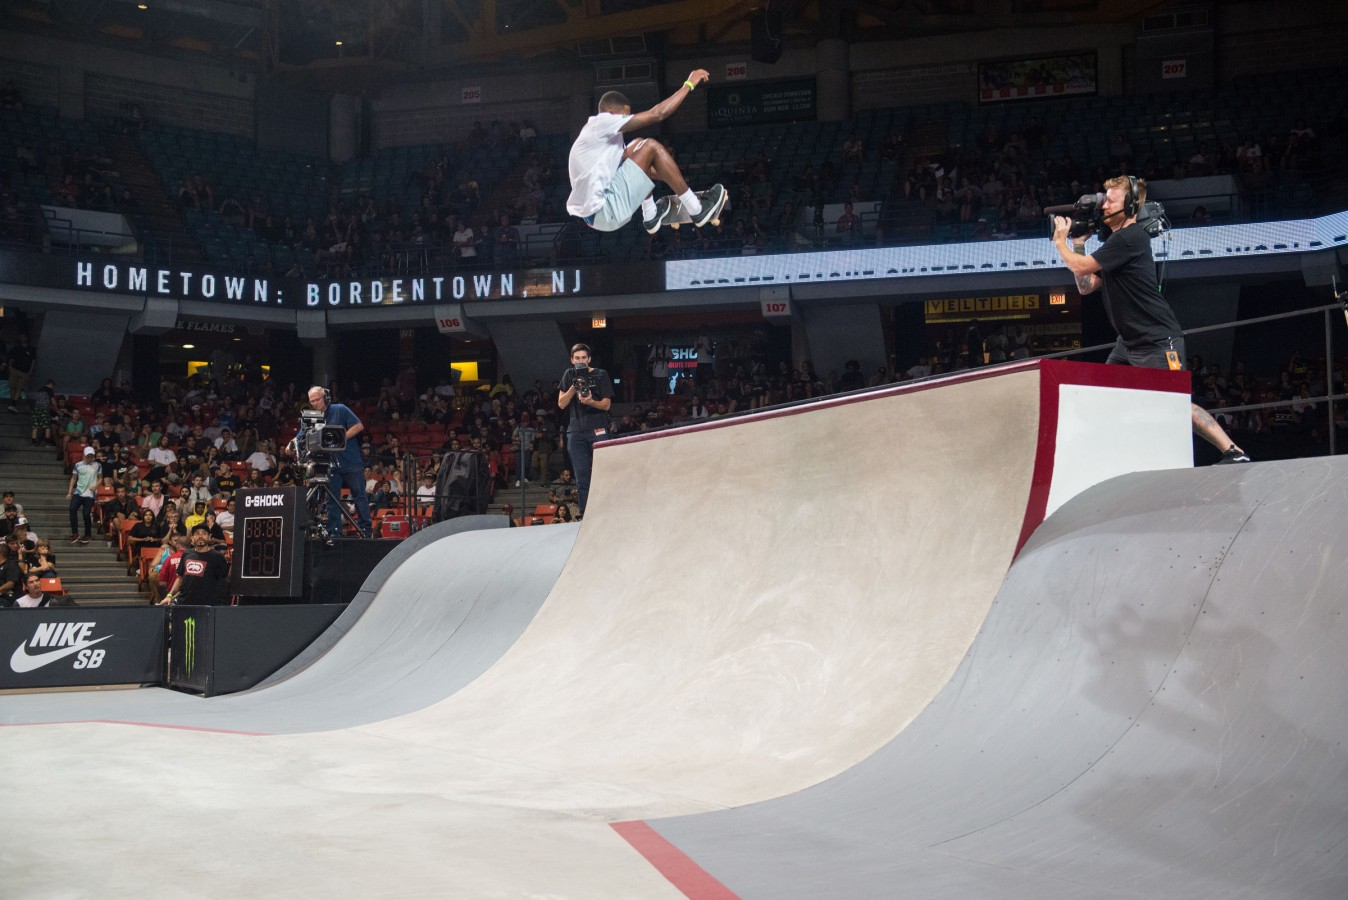 Image from Sunday's 2017 Street League Series in Chicago, IL